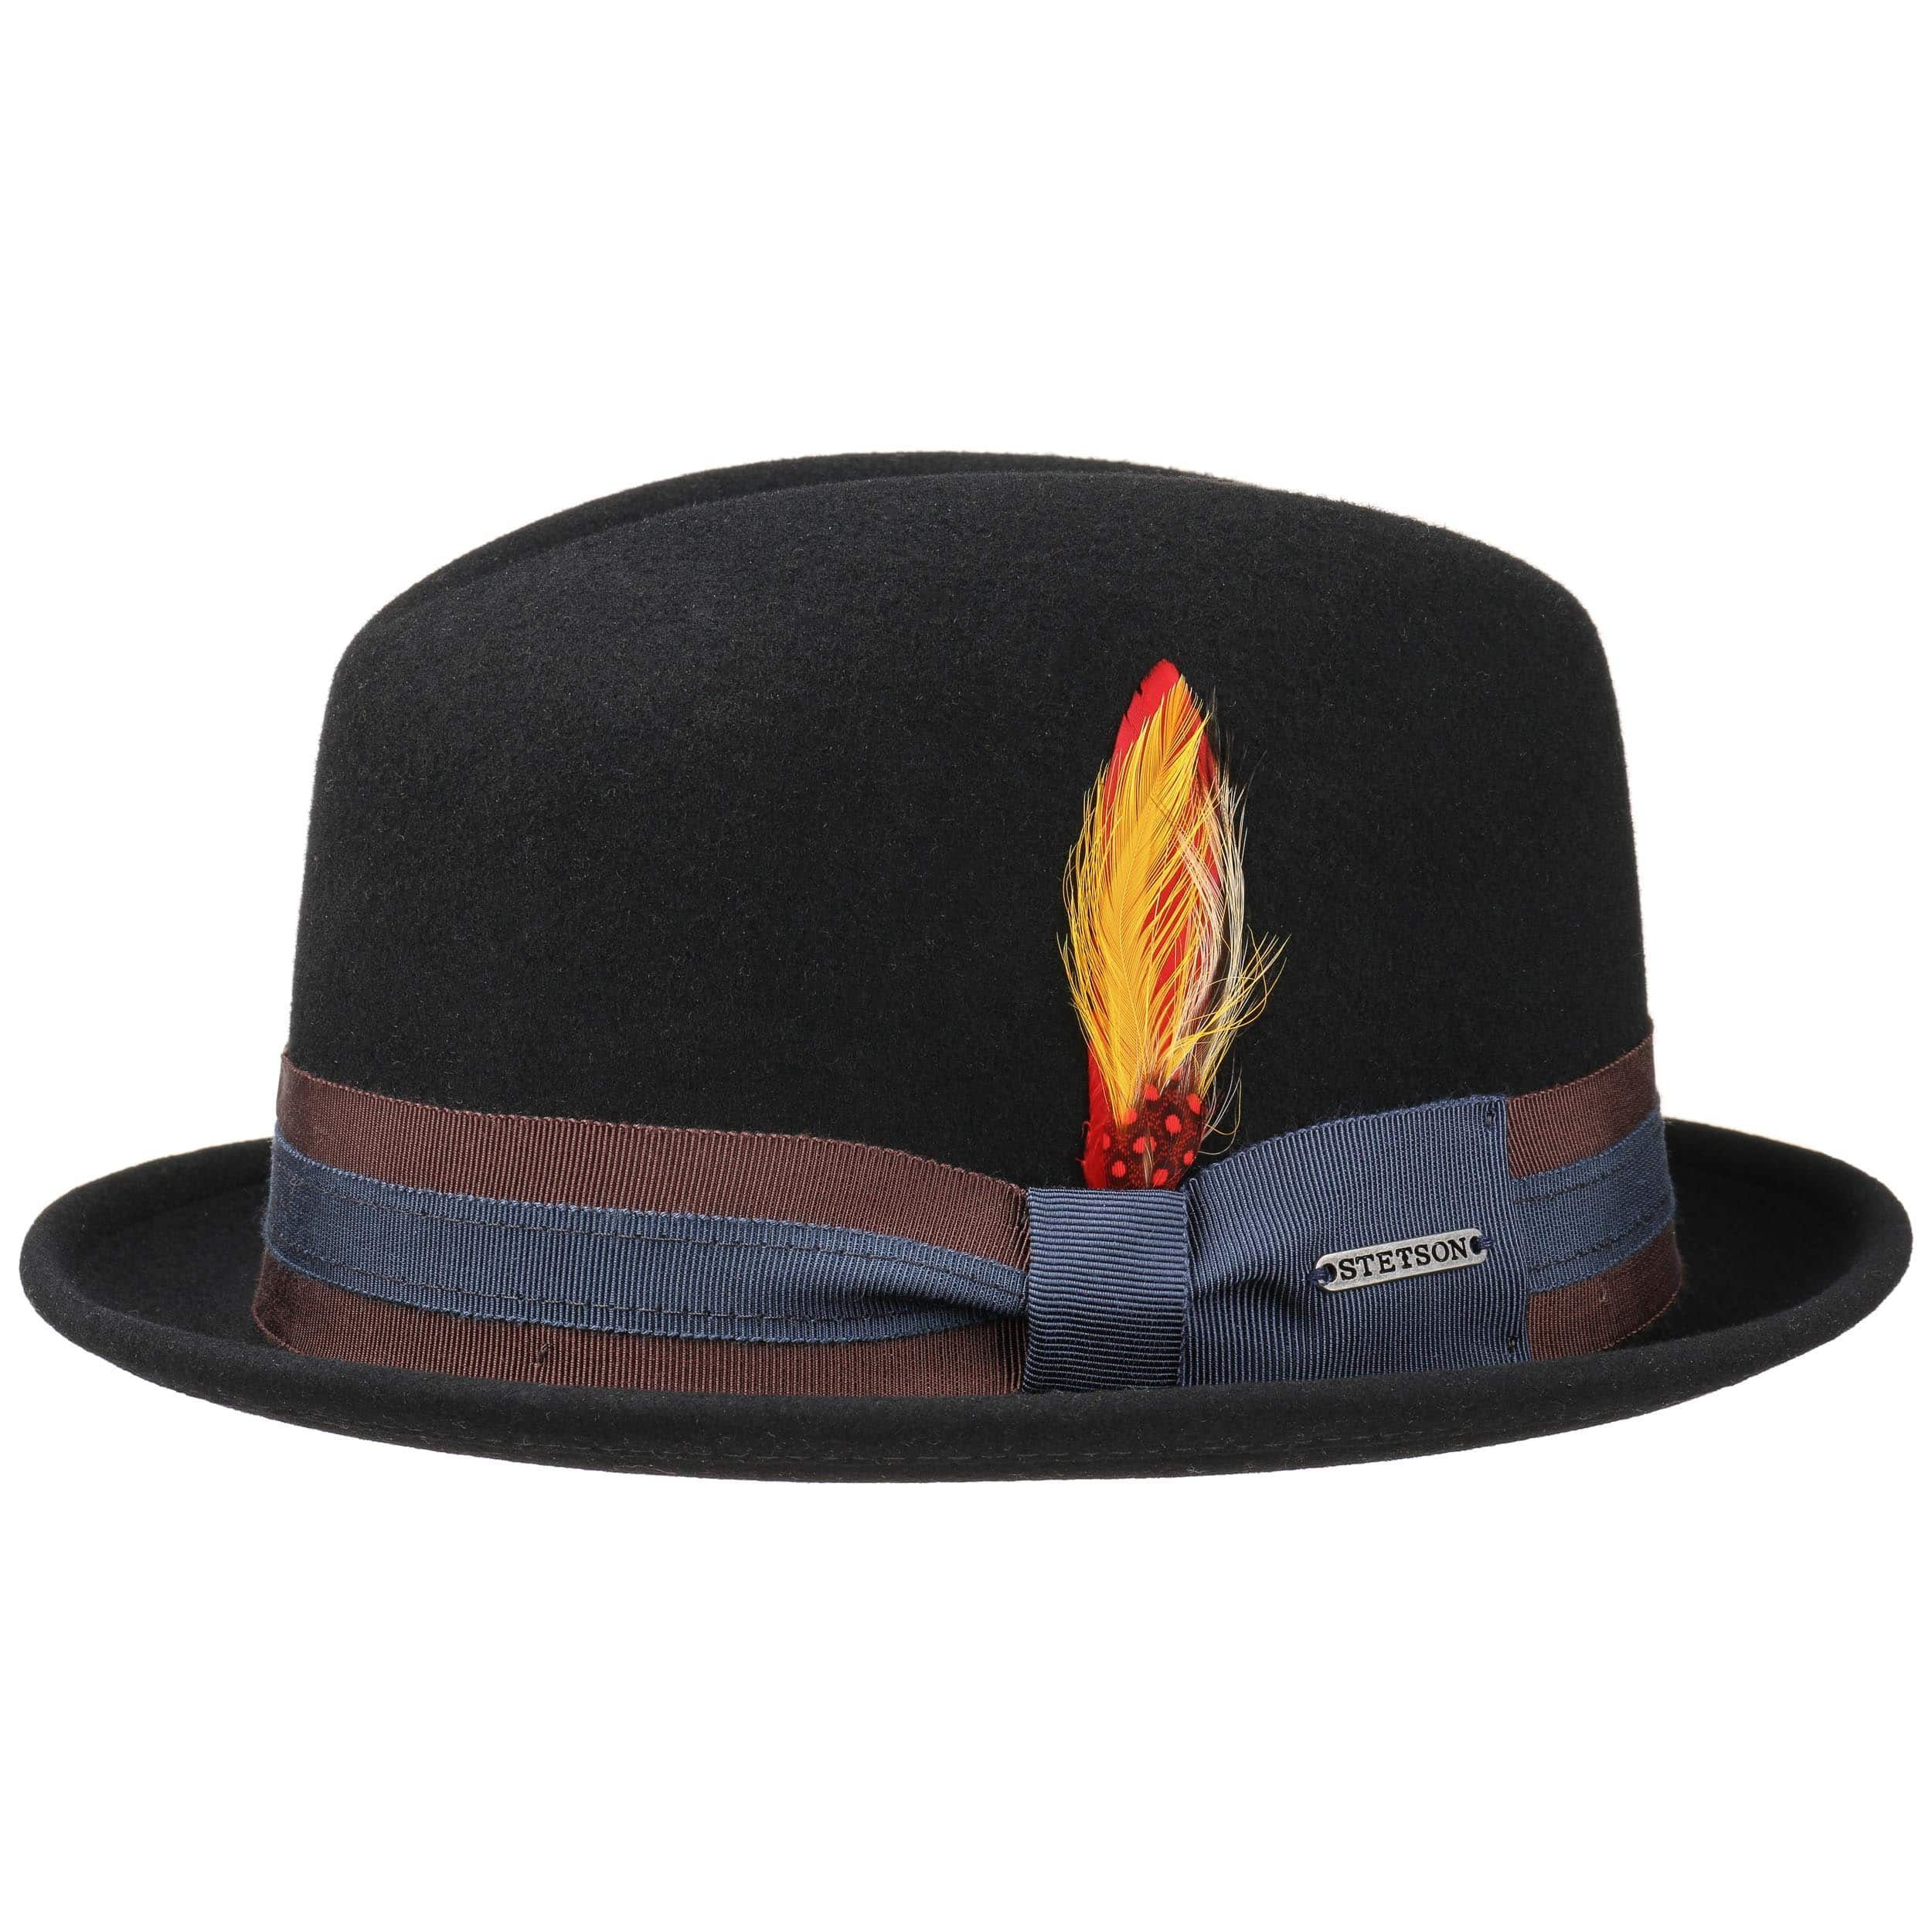 Carson Player Hat VitaFelt Hat black